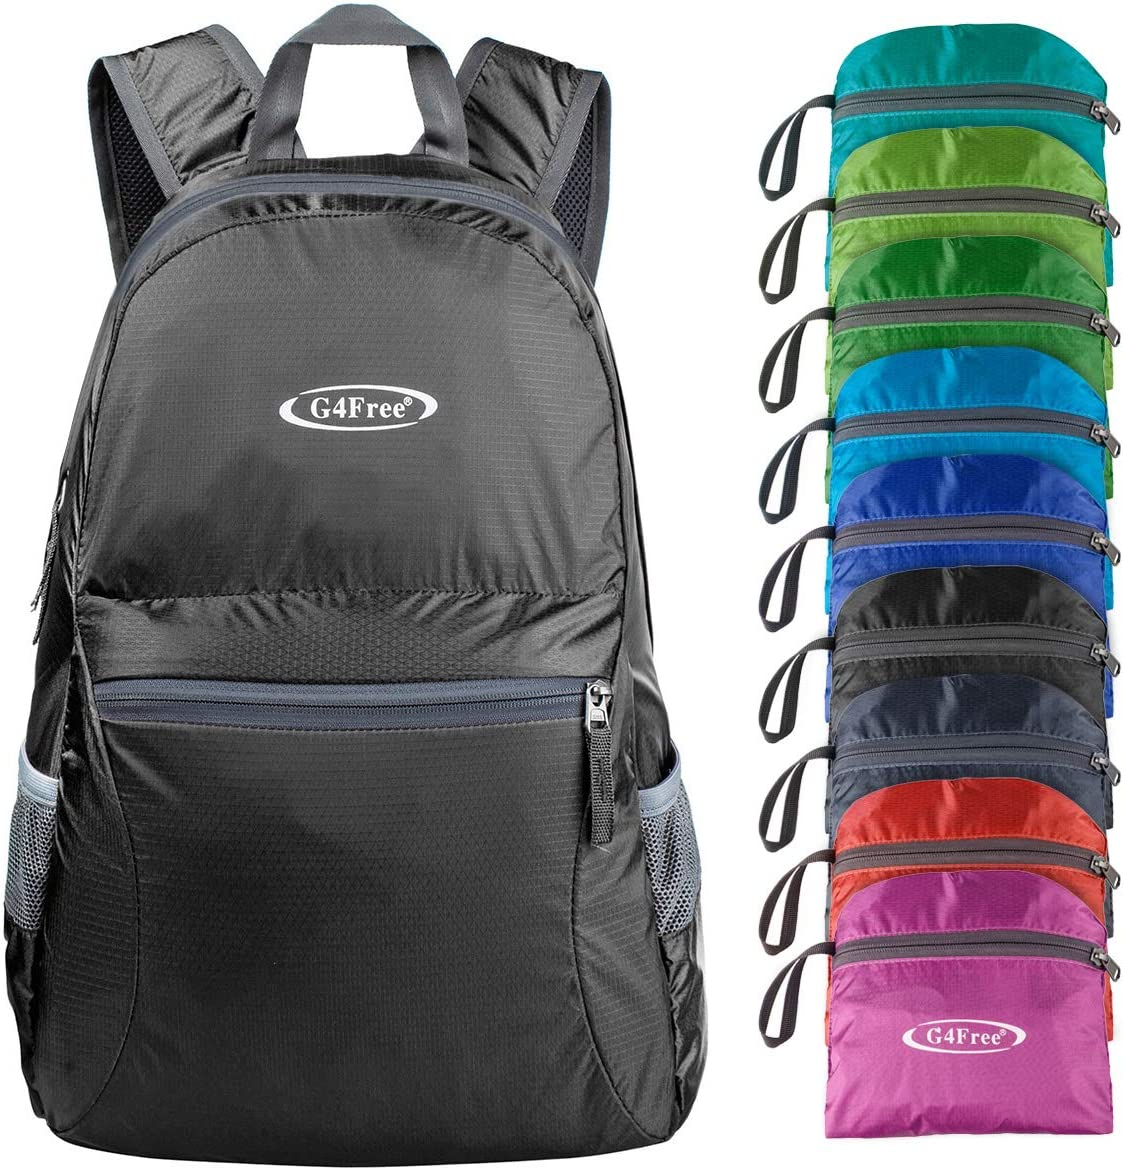 G4Free 20L Lightweight Packable service Backpack F Hiking Travel Daypack Cheap sale